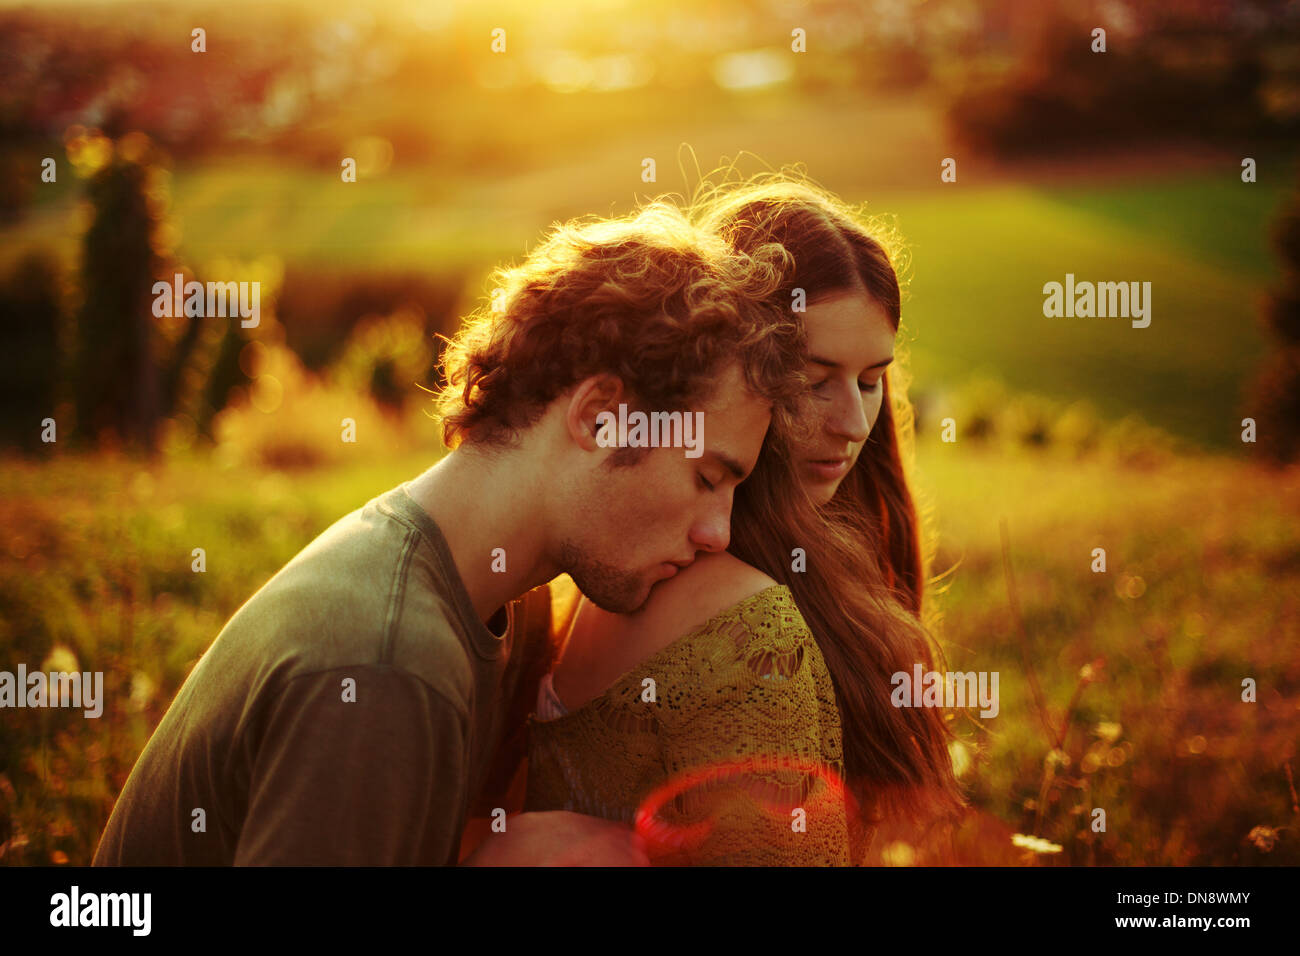 Young couple in love embracing on a meadow - Stock Image